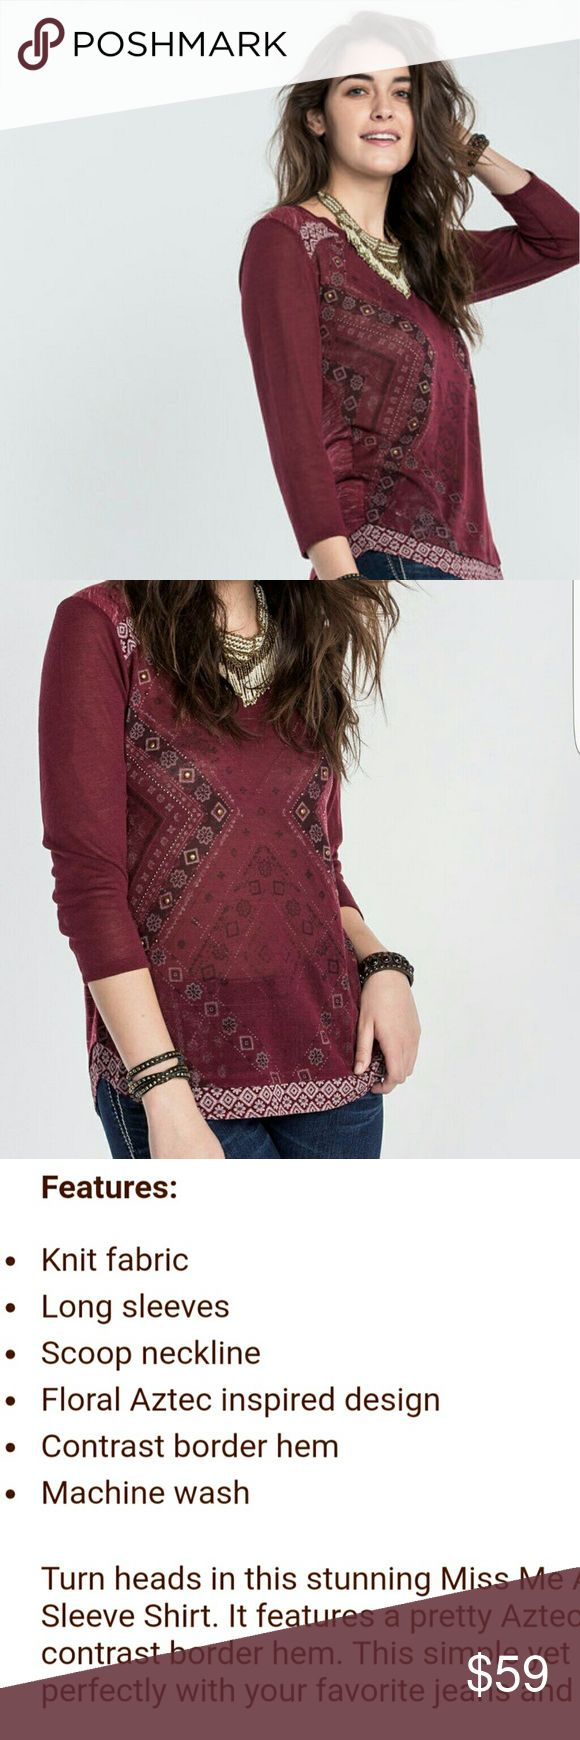 🔥LOWEST PRICE🔥 NEW Miss Me Aztec Top 🔥LAST DAY TO BUY THIS ITEM🔥 Brand new with tags Miss Me Red Wine Long Sleeve Aztec Top  Flattering fit. Perfect addition to any wardrobe; Casual, Boho, Chic, Coachella, festival, and more. Further description in picture 3  No trades Miss Me Tops Tees - Long Sleeve